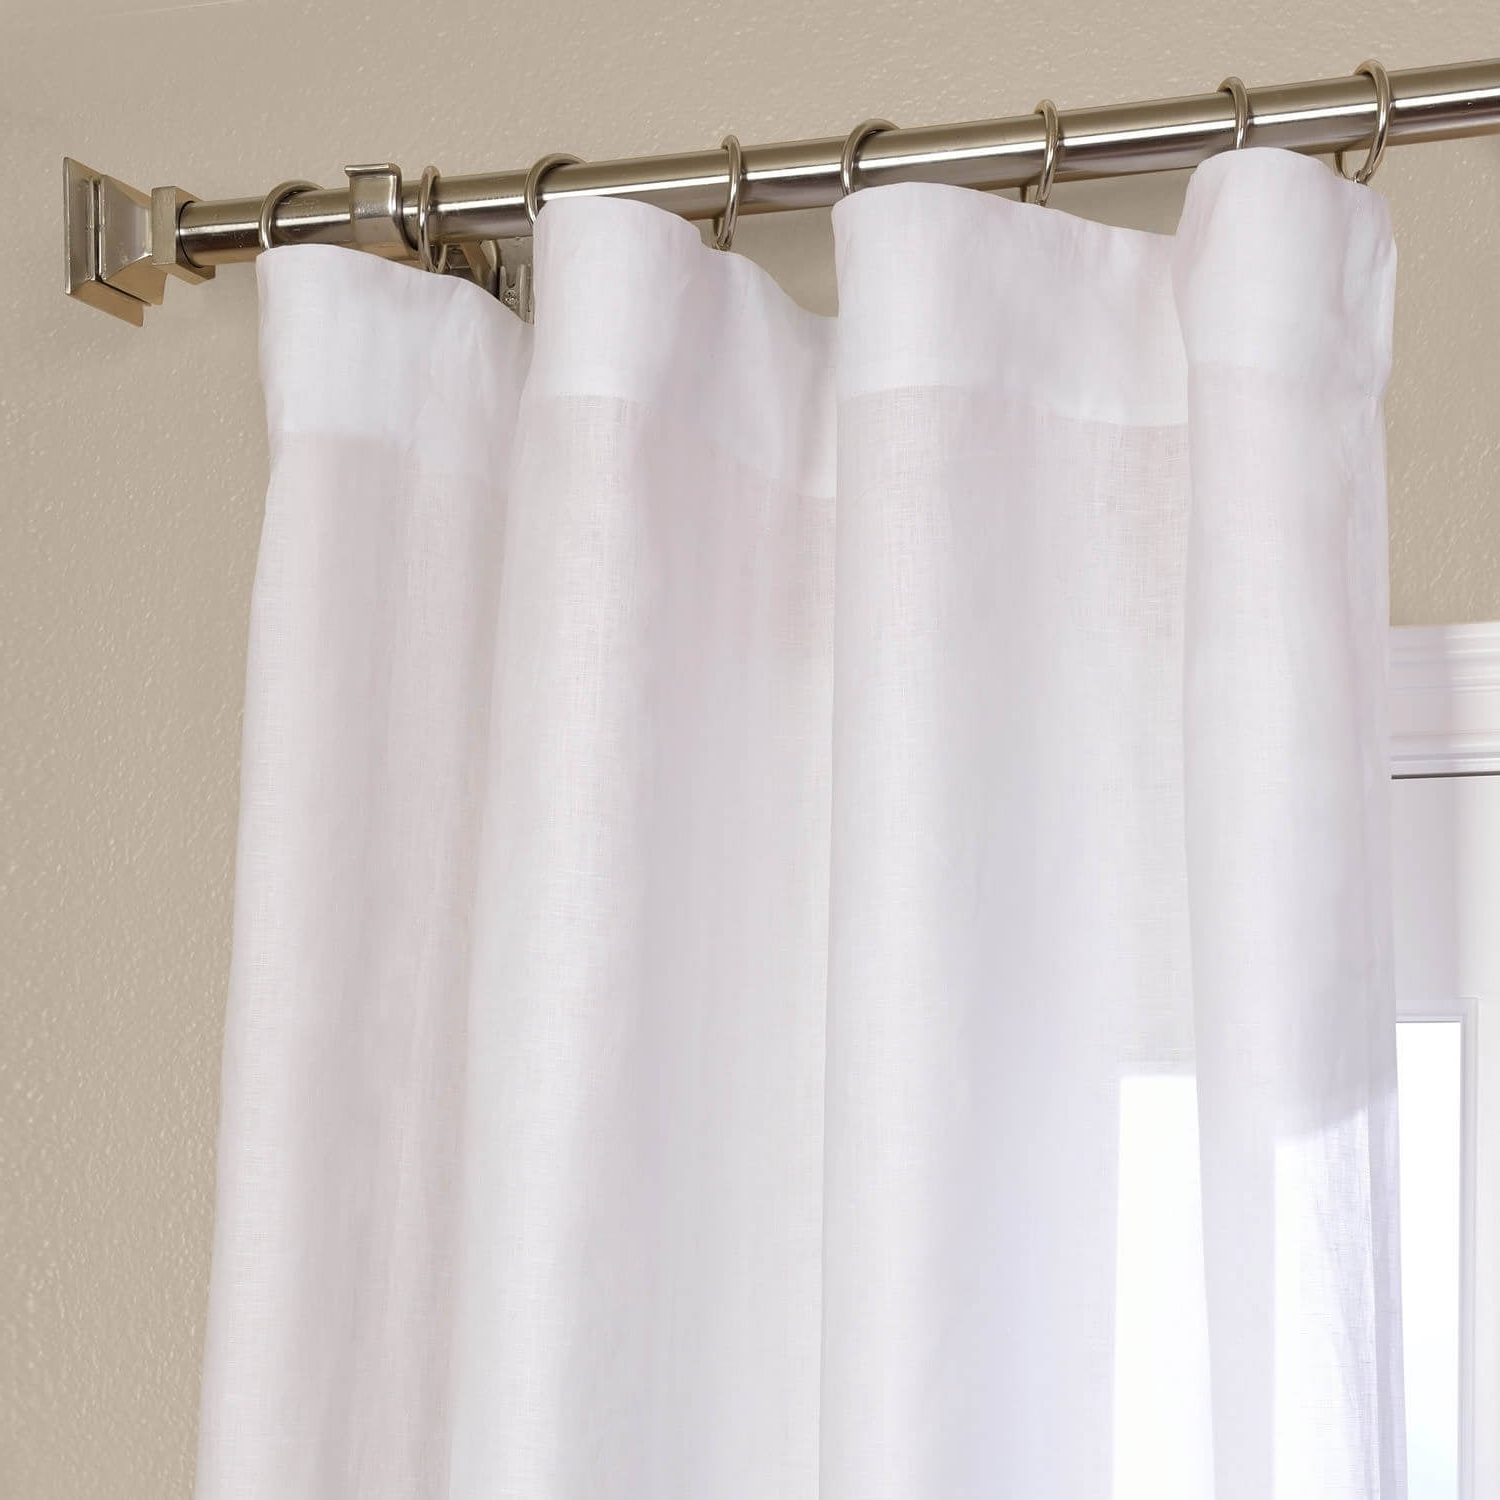 Best And Newest Signature French Linen Curtain Panels With Exclusive Fabrics Signature French Linen Curtain Panel (View 2 of 20)